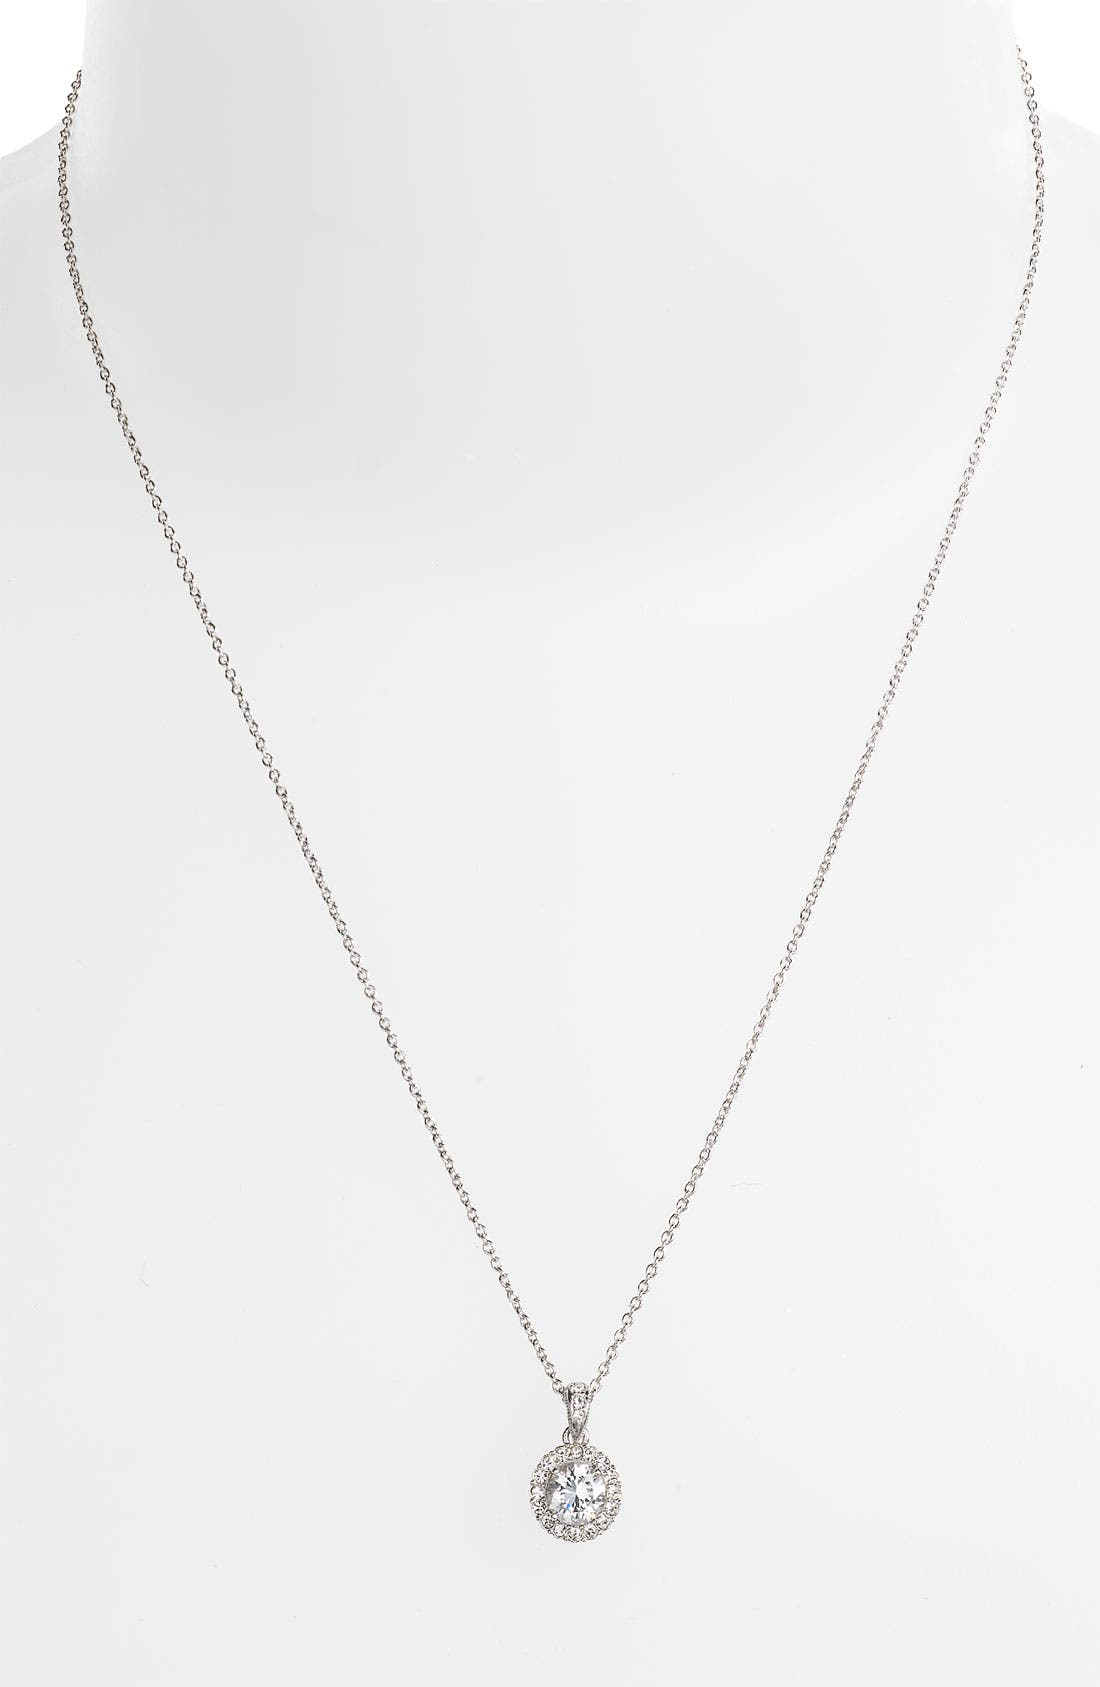 Alternate Image 2  - Nadri Framed Round Cubic Zirconia Necklace (Nordstrom Exclusive)